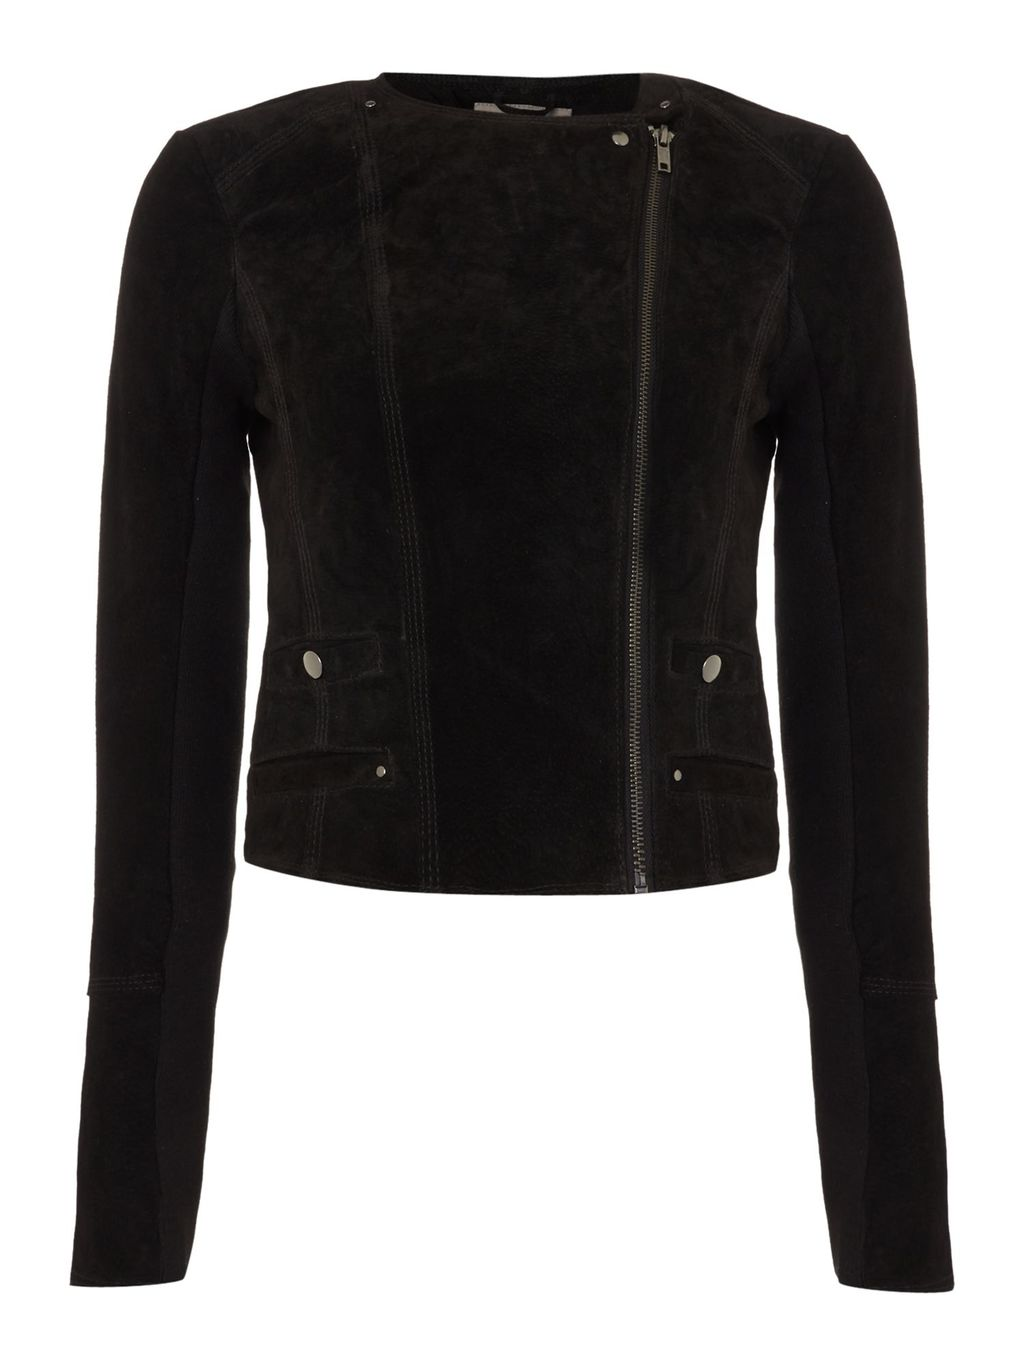 Long Sleeve Suede Jacket, Black - pattern: plain; style: biker; collar: asymmetric biker; fit: slim fit; predominant colour: black; occasions: casual, creative work; length: standard; fibres: leather - 100%; sleeve length: long sleeve; sleeve style: standard; collar break: high/illusion of break when open; pattern type: fabric; texture group: suede; season: s/s 2016; wardrobe: basic